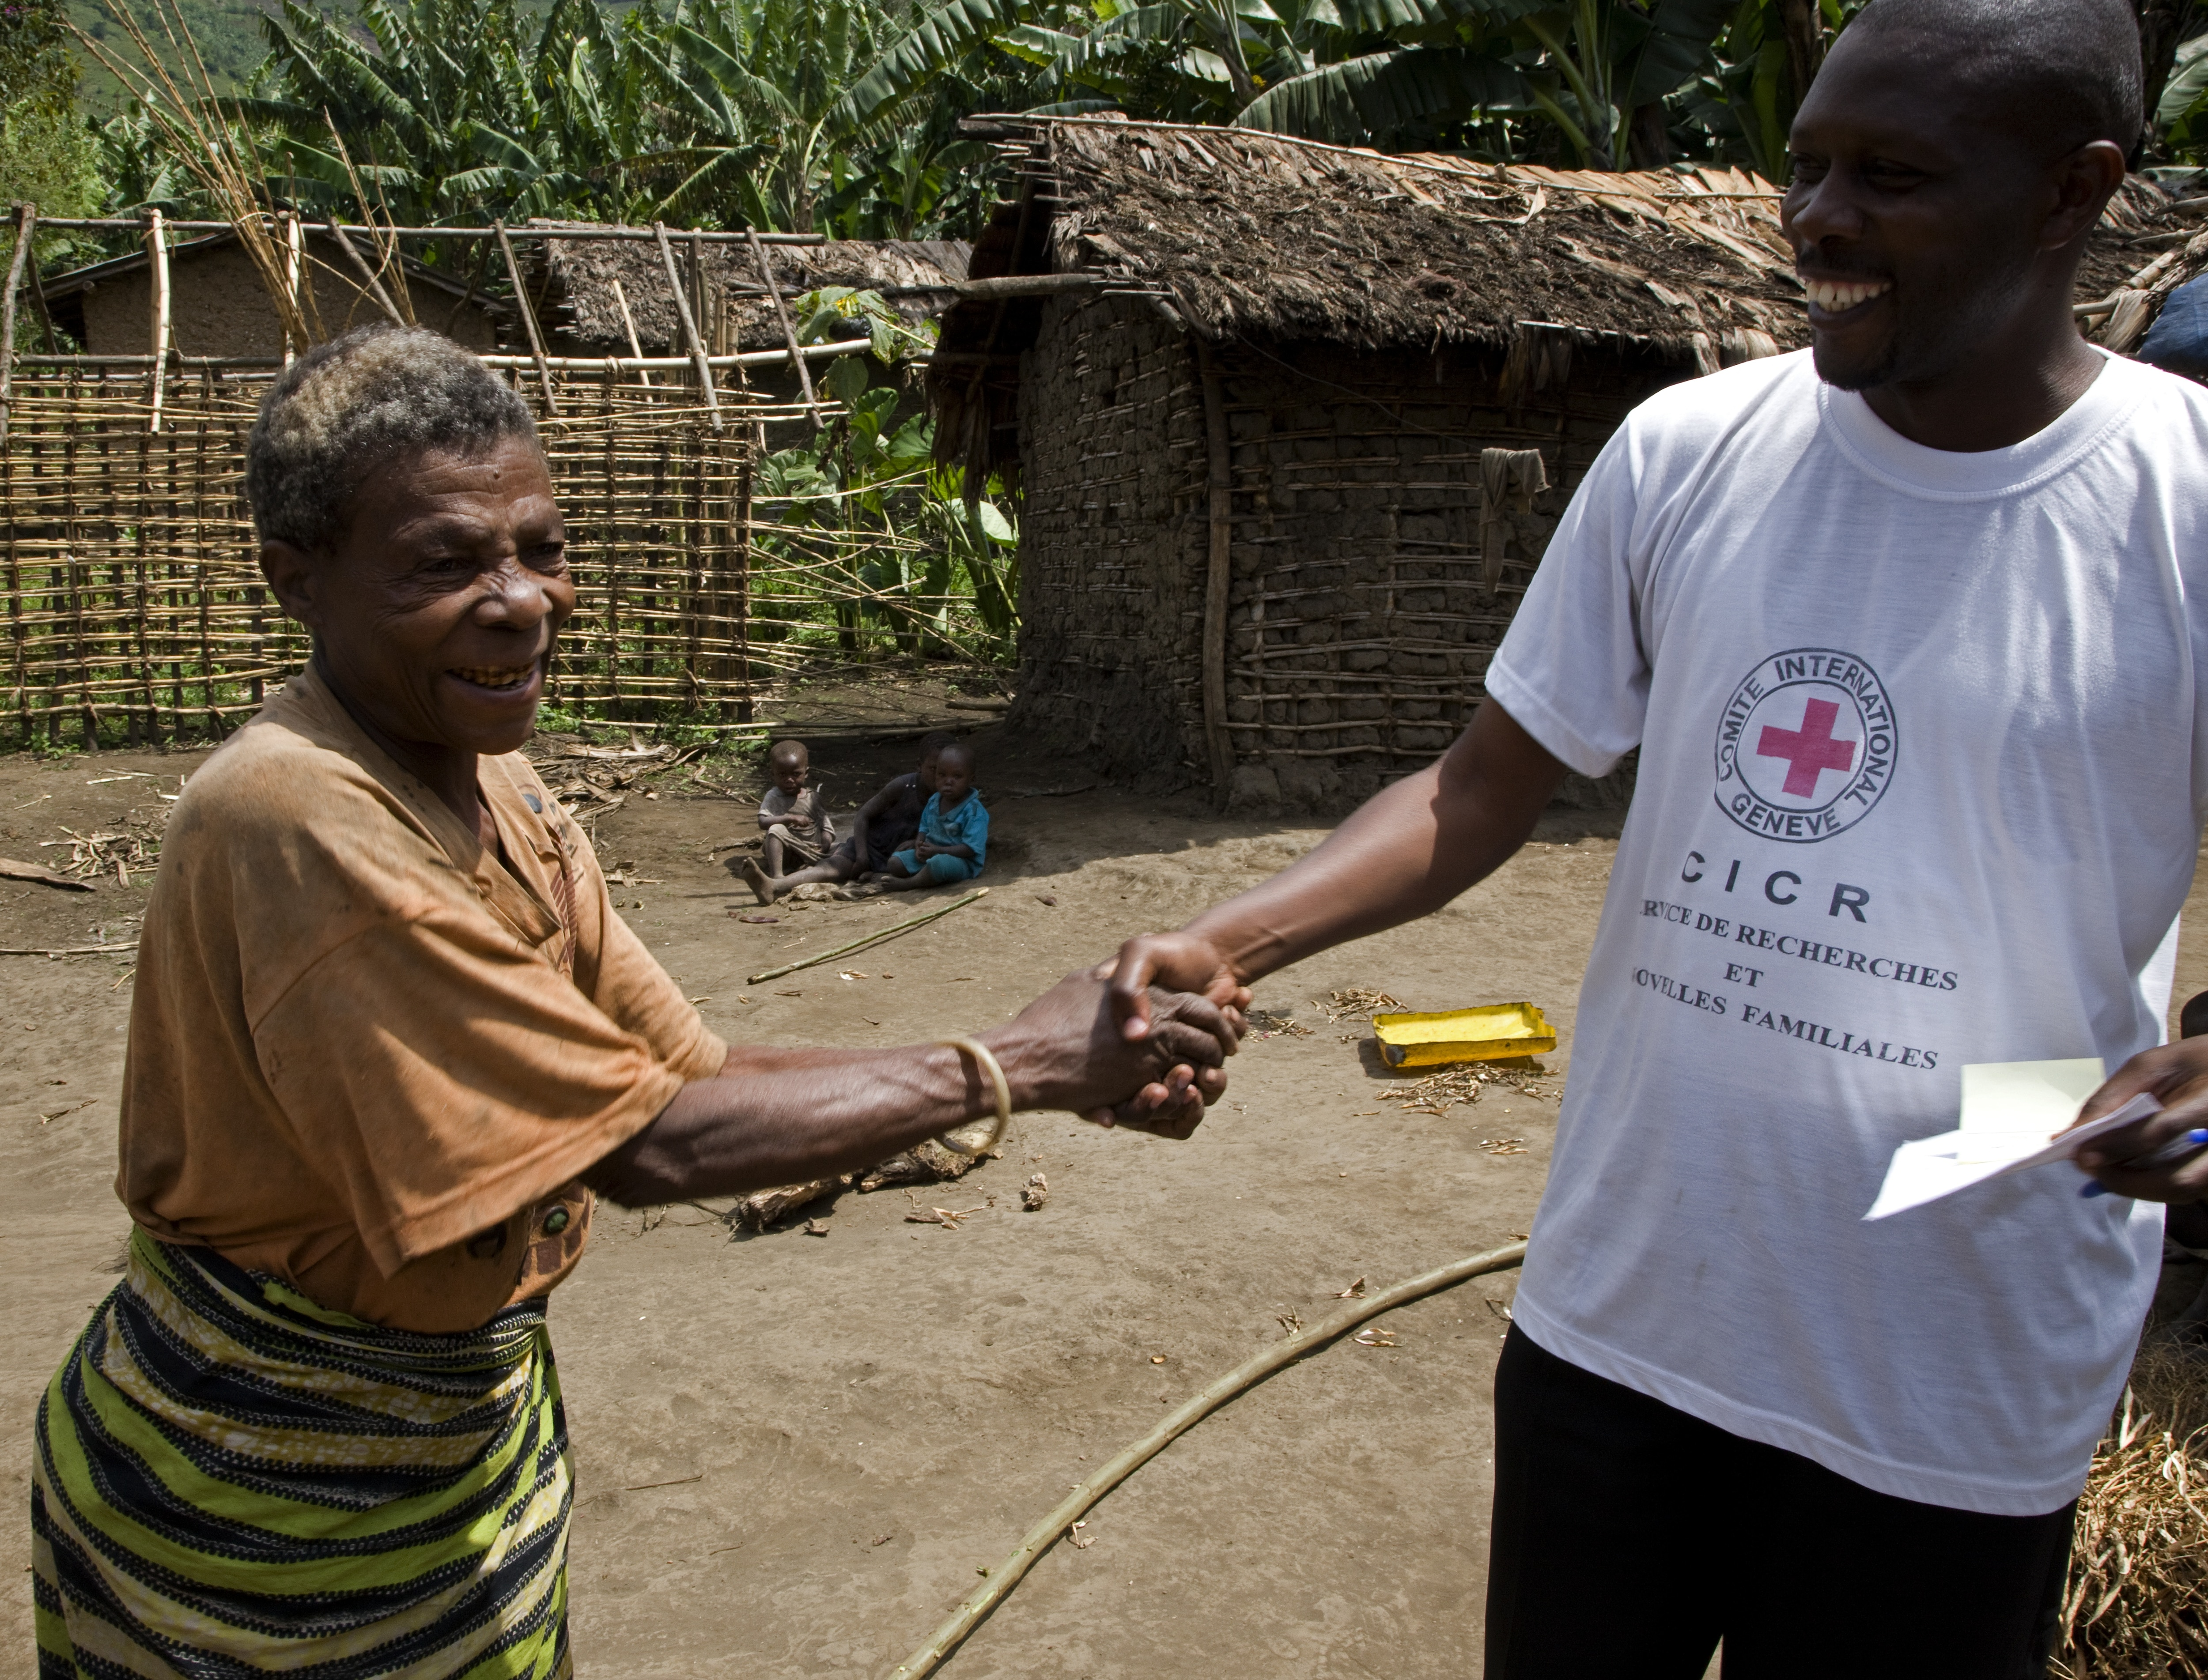 Mubambiro village, North Kivu, Democratic Republic of Congo. Distribution of Red Cross messages. (©ICRC/C. De Keyzer)